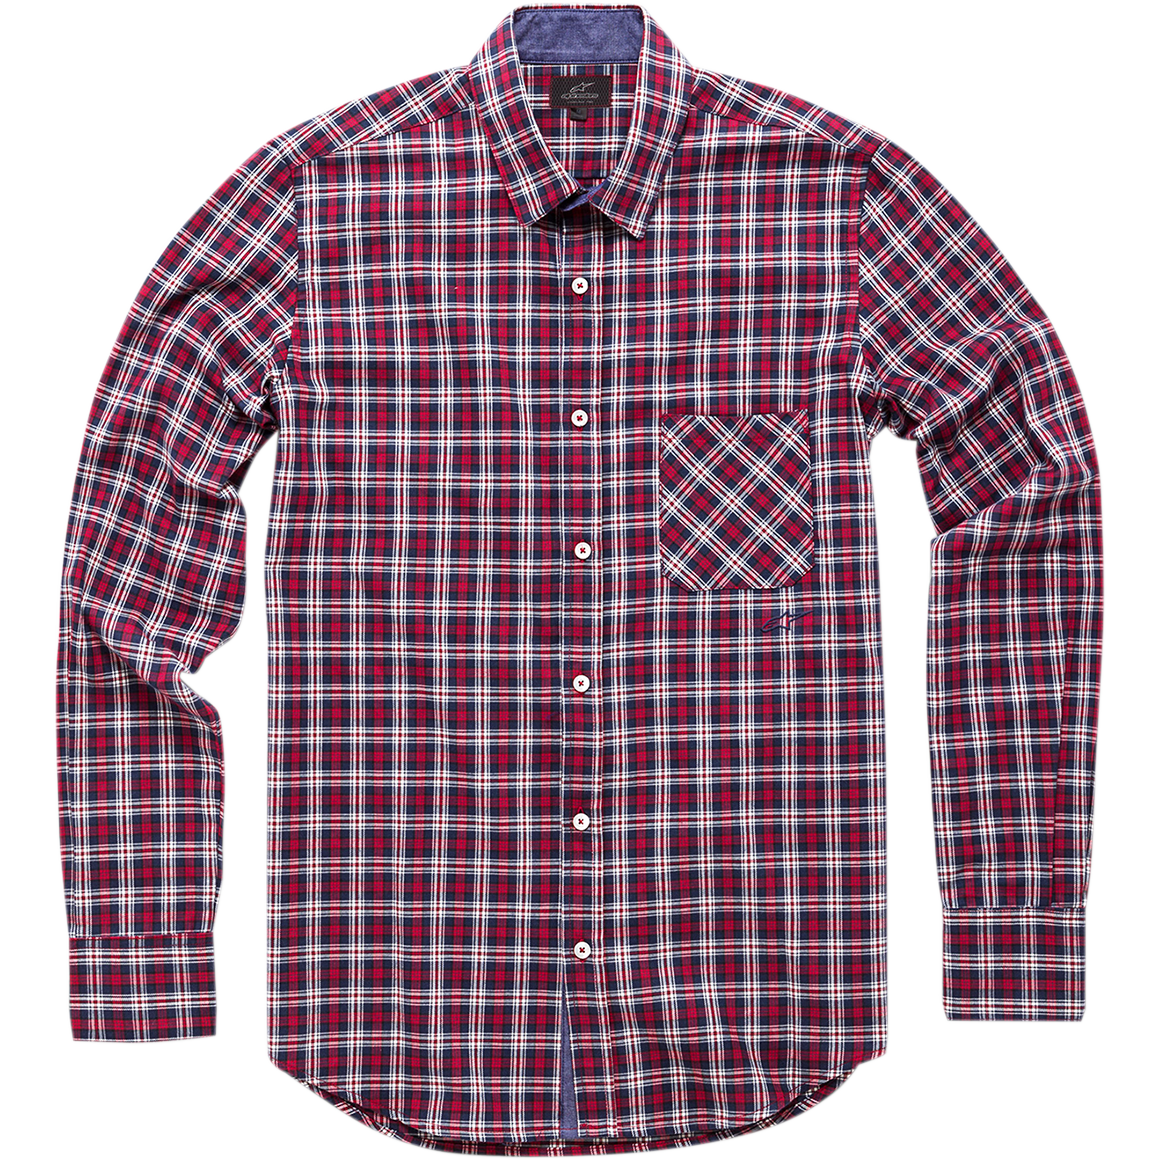 Enduro Long Sleeve Shirt